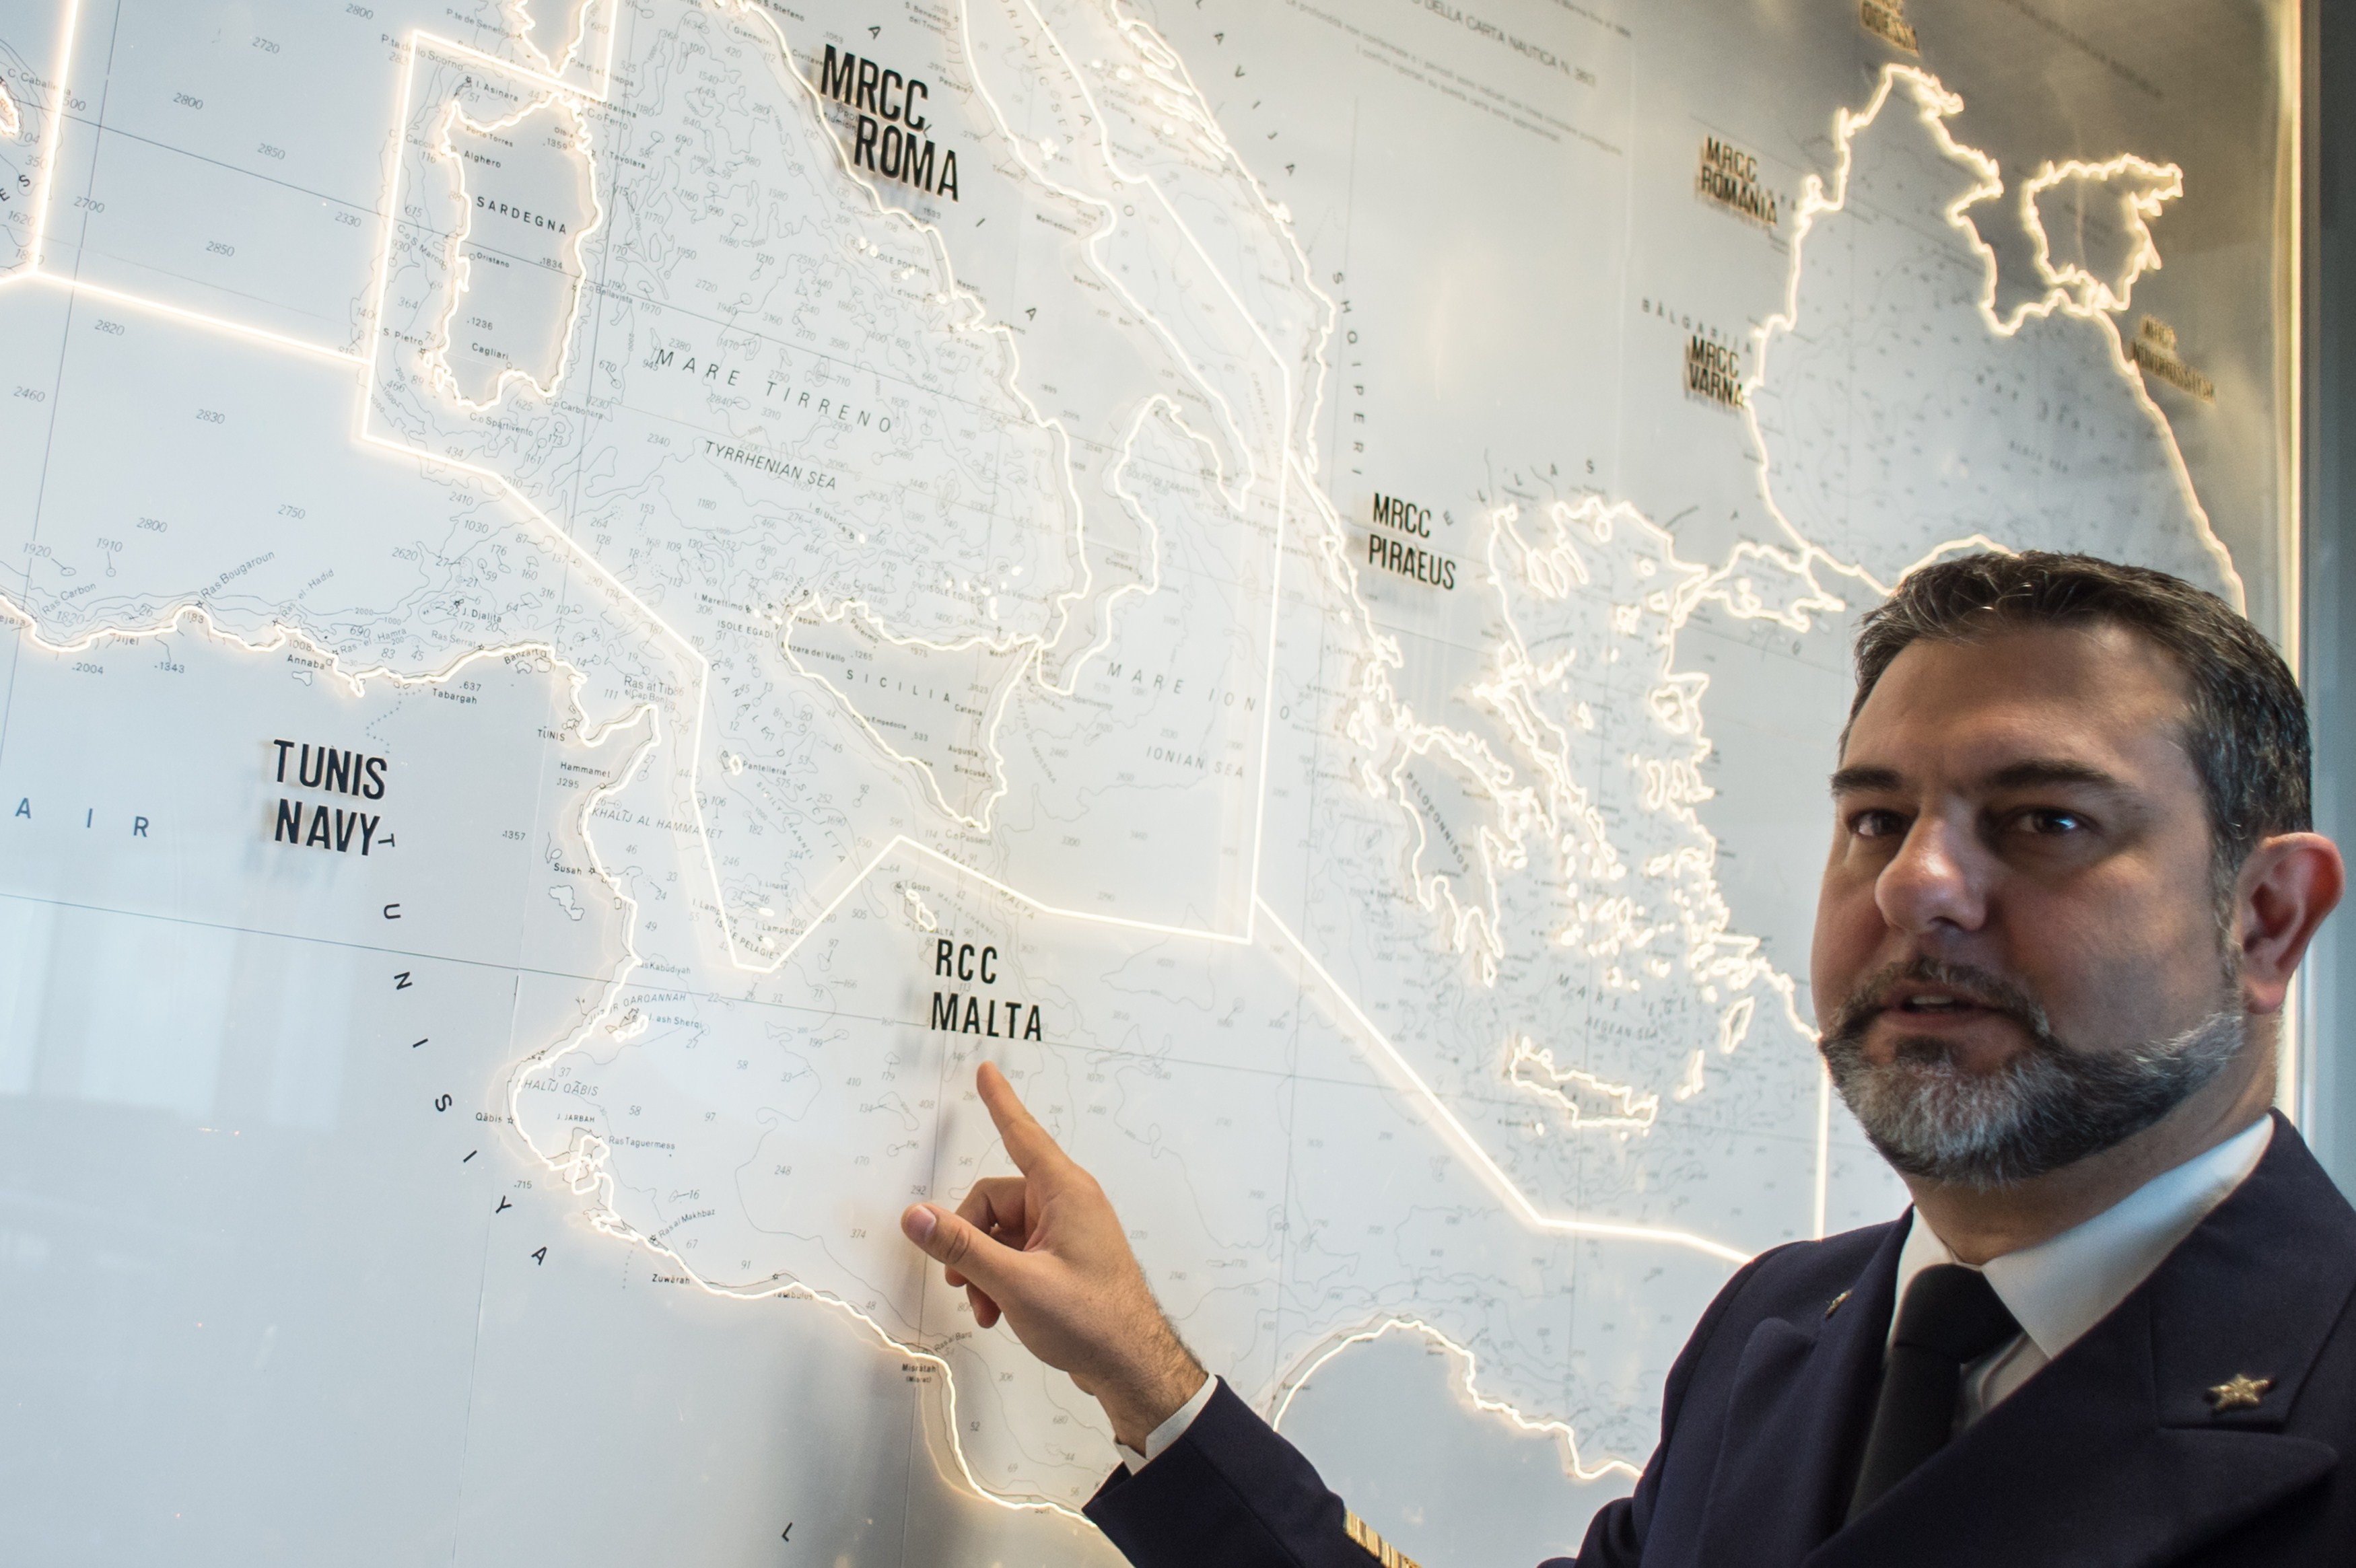 Italian officer Gianluca D'Agostino of the Italian Coast Guard, looks at a map of the Mediterranean Sea, in the control center at the headquarter of Italian Coast Guard, on May 28 2015, in Rome. Photo by Andreas Solaro/Getty Images.